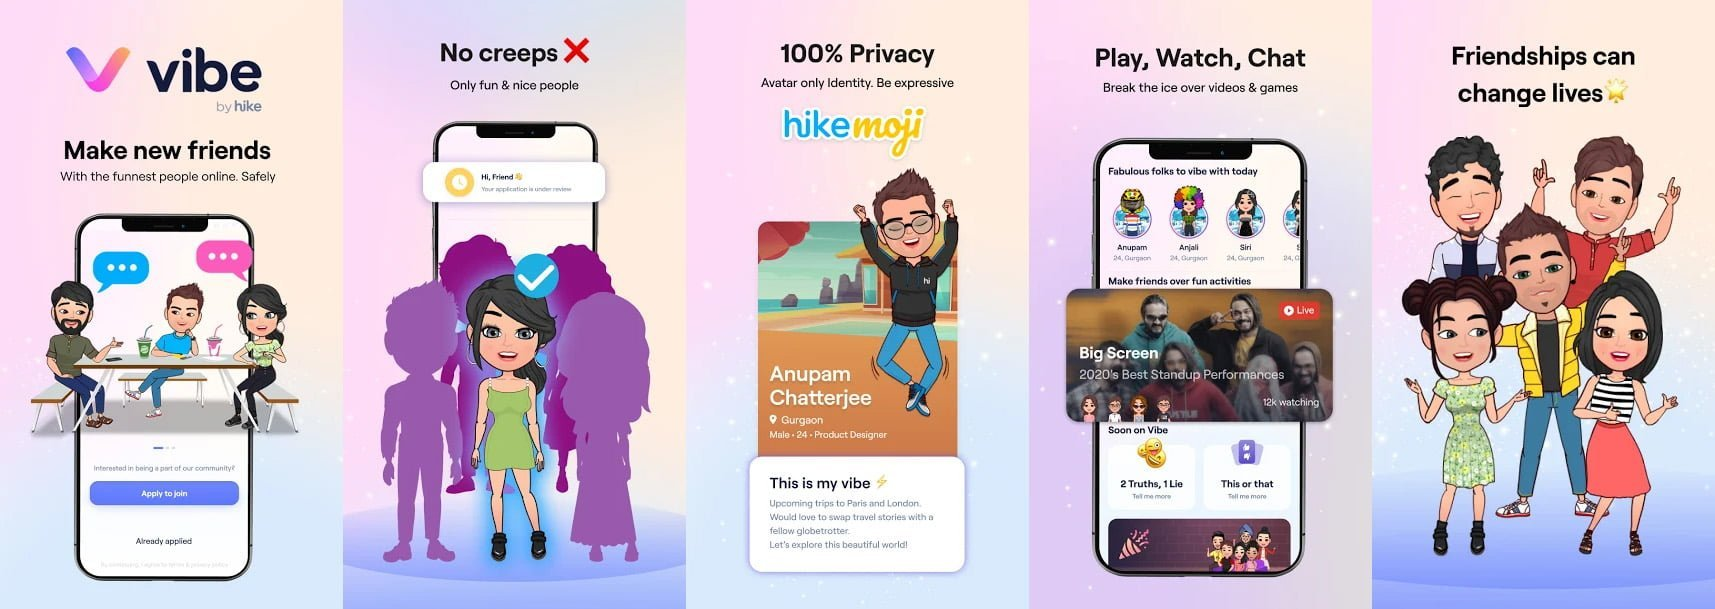 Vibe by Hike AMP Banner